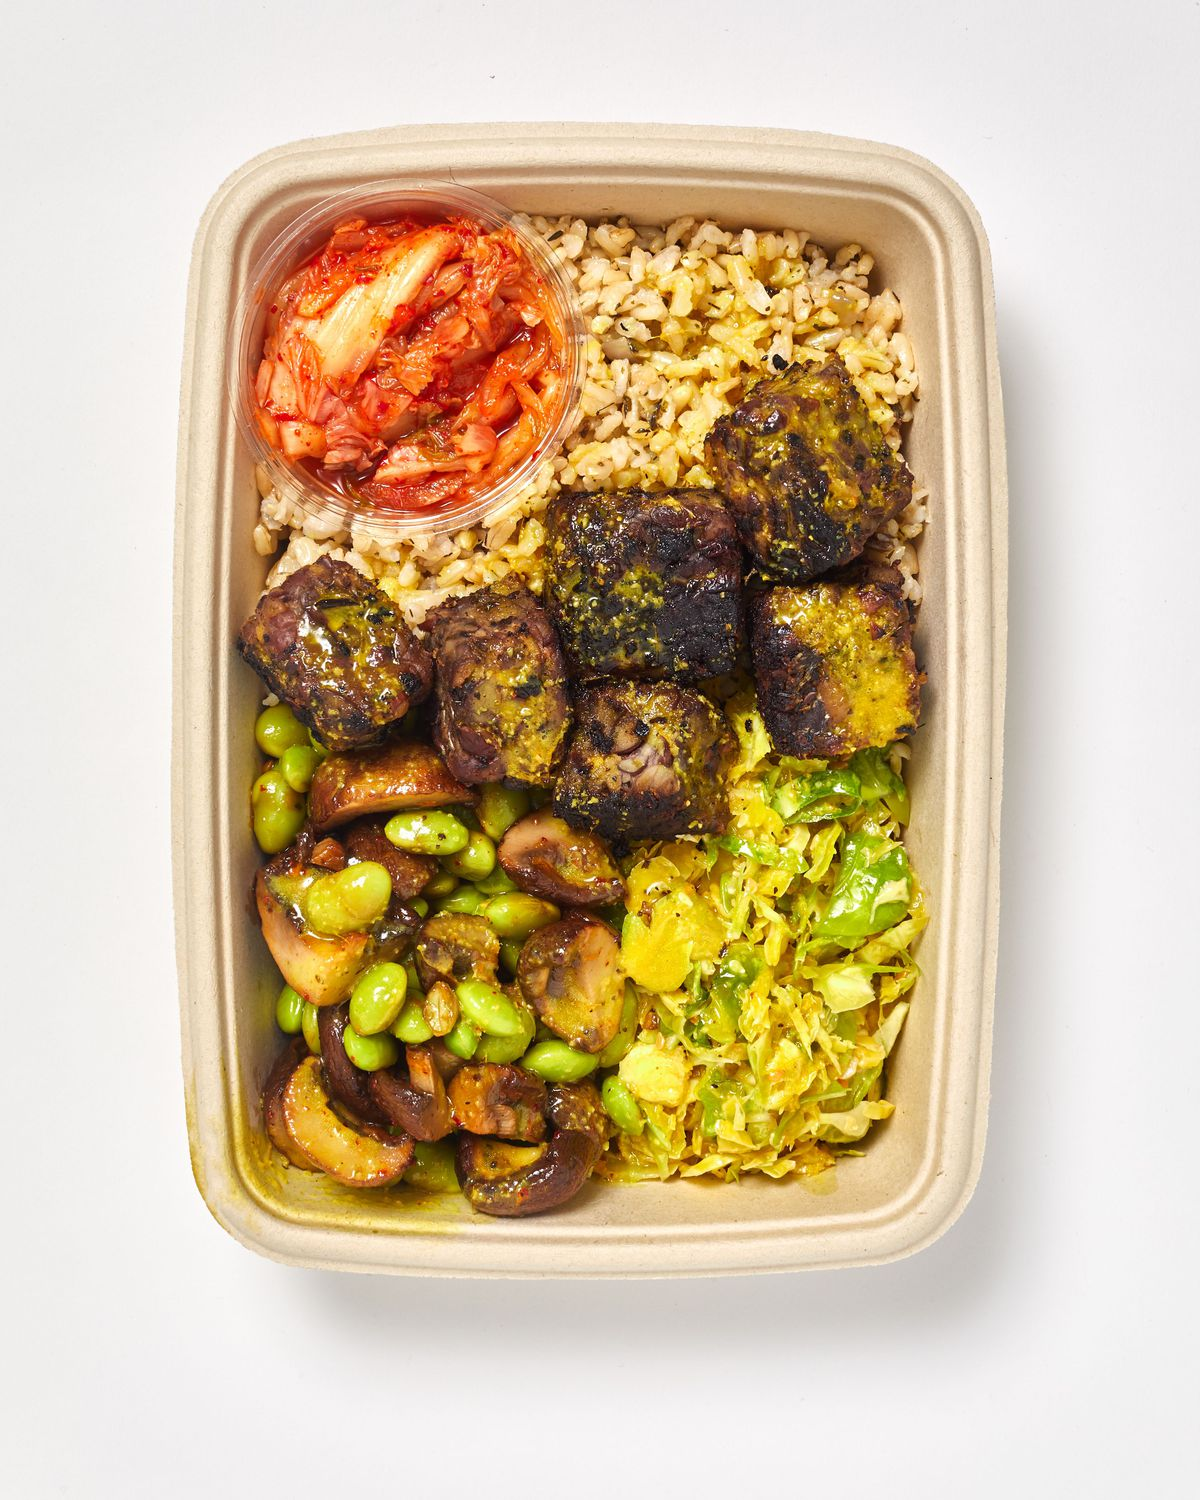 JESSAMINE BROWN RICE, BRUSSELS SPROUTS, MARINATED MUSHROOMS, TEMPEH, KIMCHEE, TURMERIC-GINGER VIN